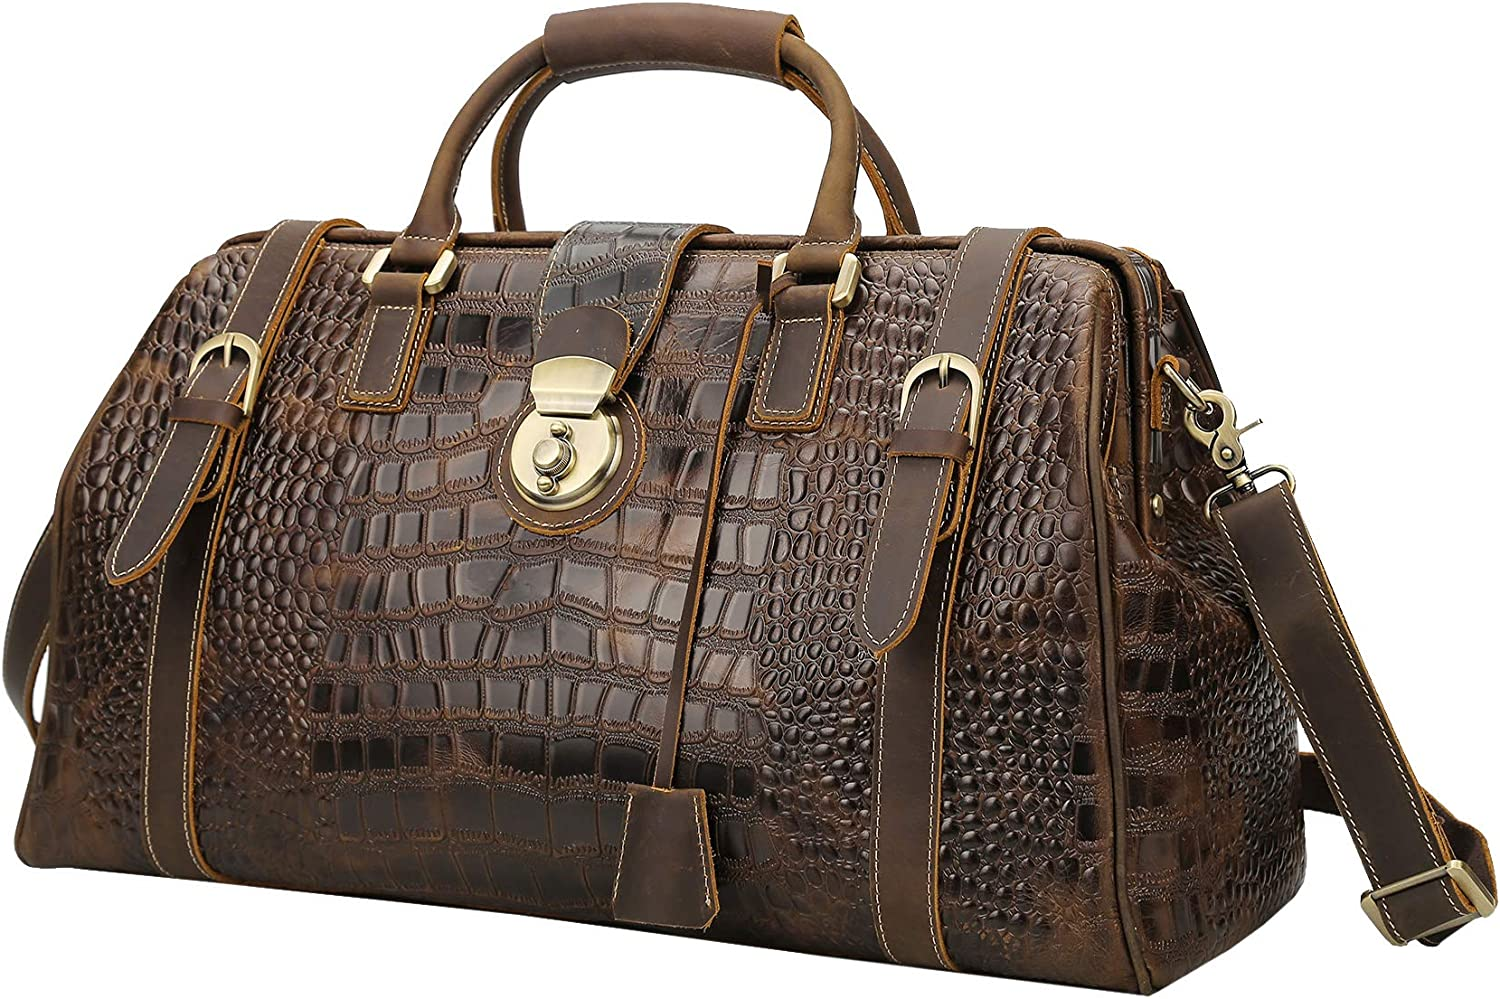 Polare 21 Crocodile Pattern Cowhide Leather Weekender Travel Overnight Luggage Duffel Bag